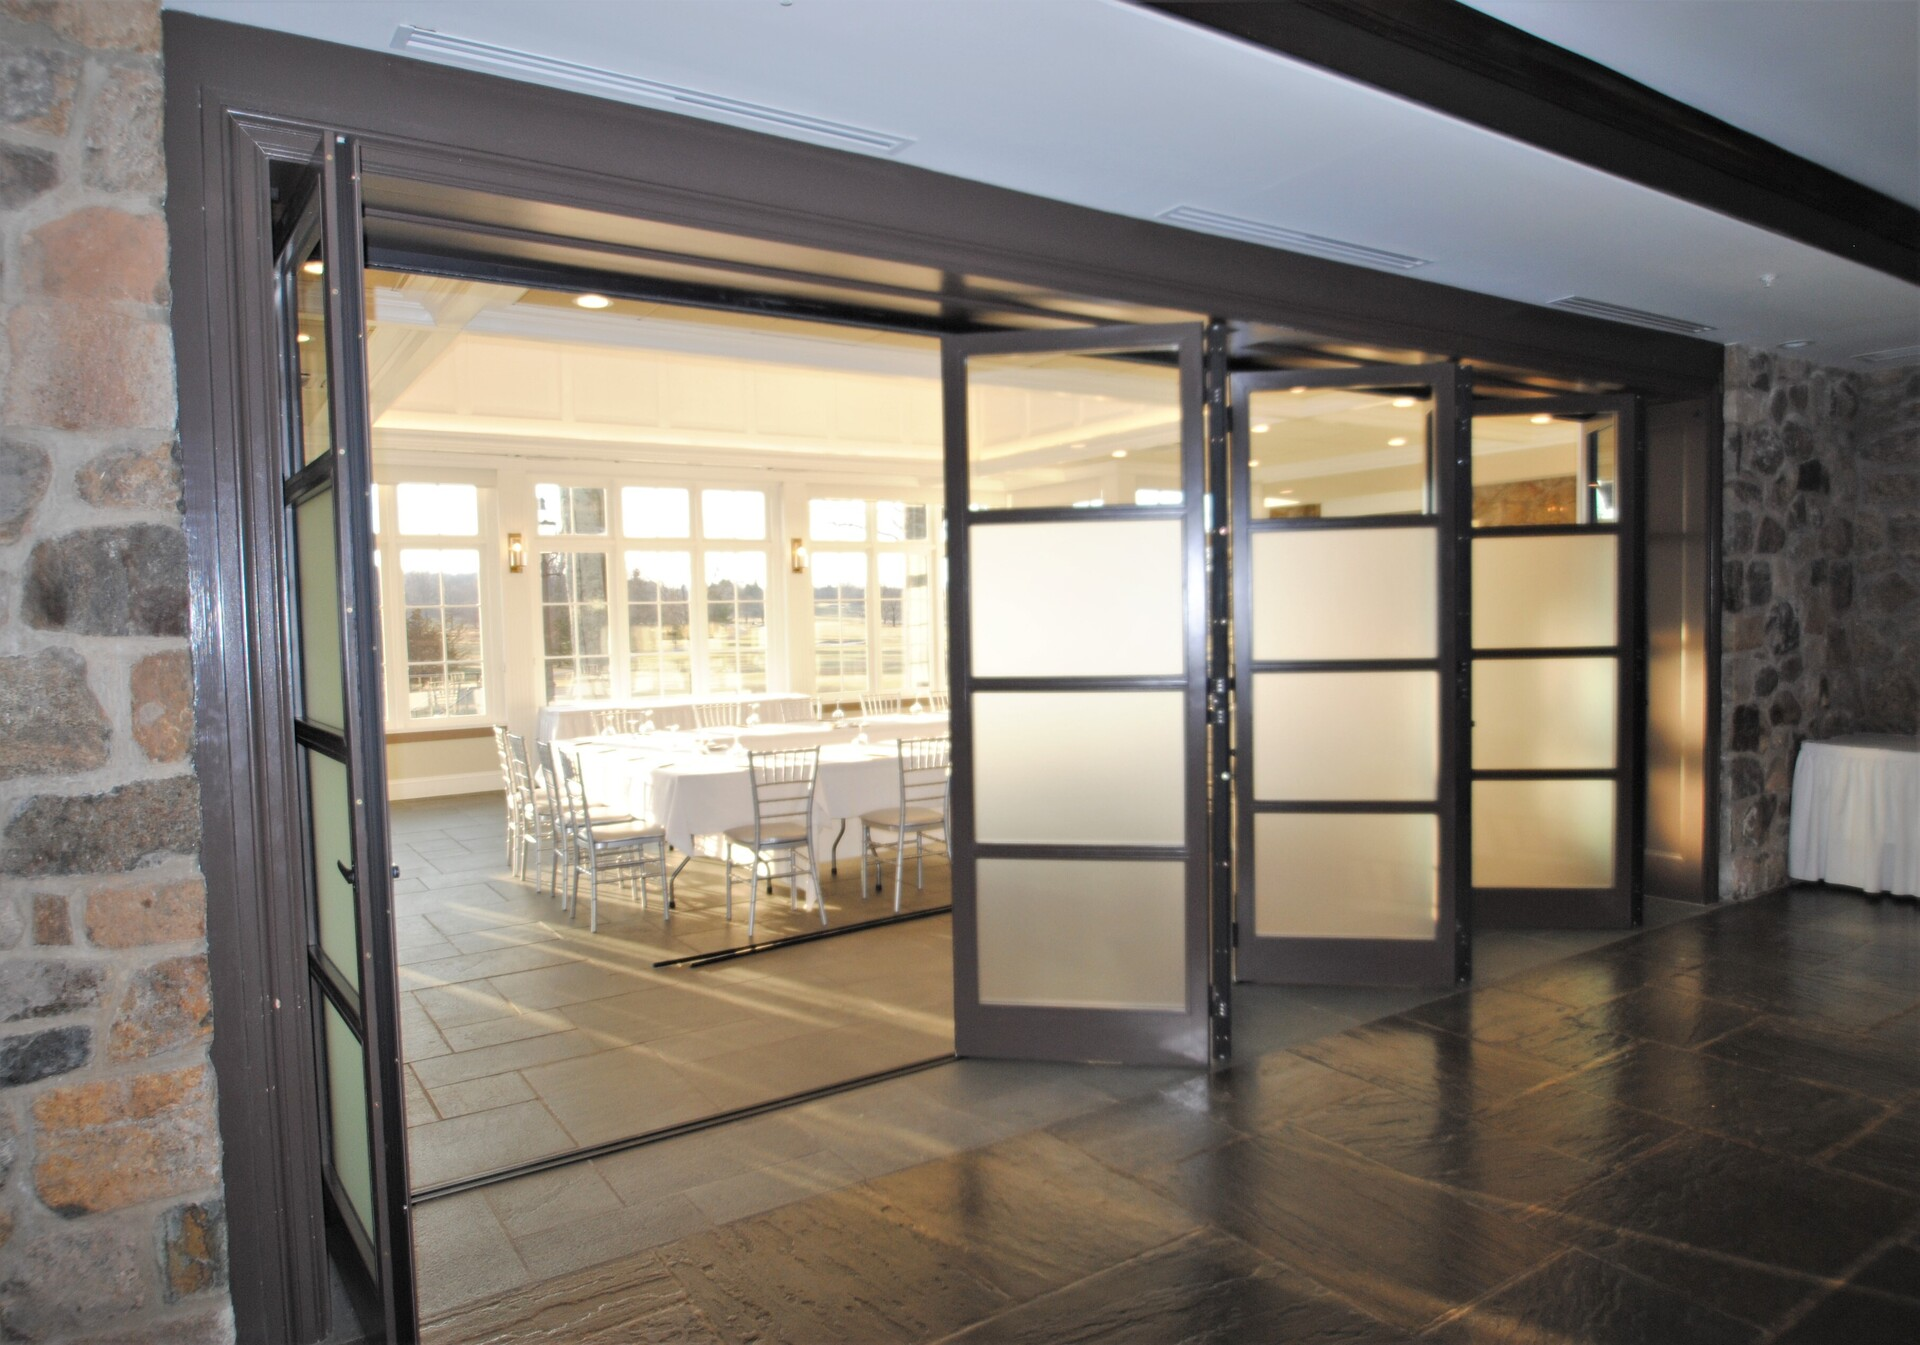 A membership at the Fiddler's Elbow Country Club is one of the most sought after memberships in the area. ActiveWall was tasked with designing and installing the horizontal folding wall seen here for their banquet space.